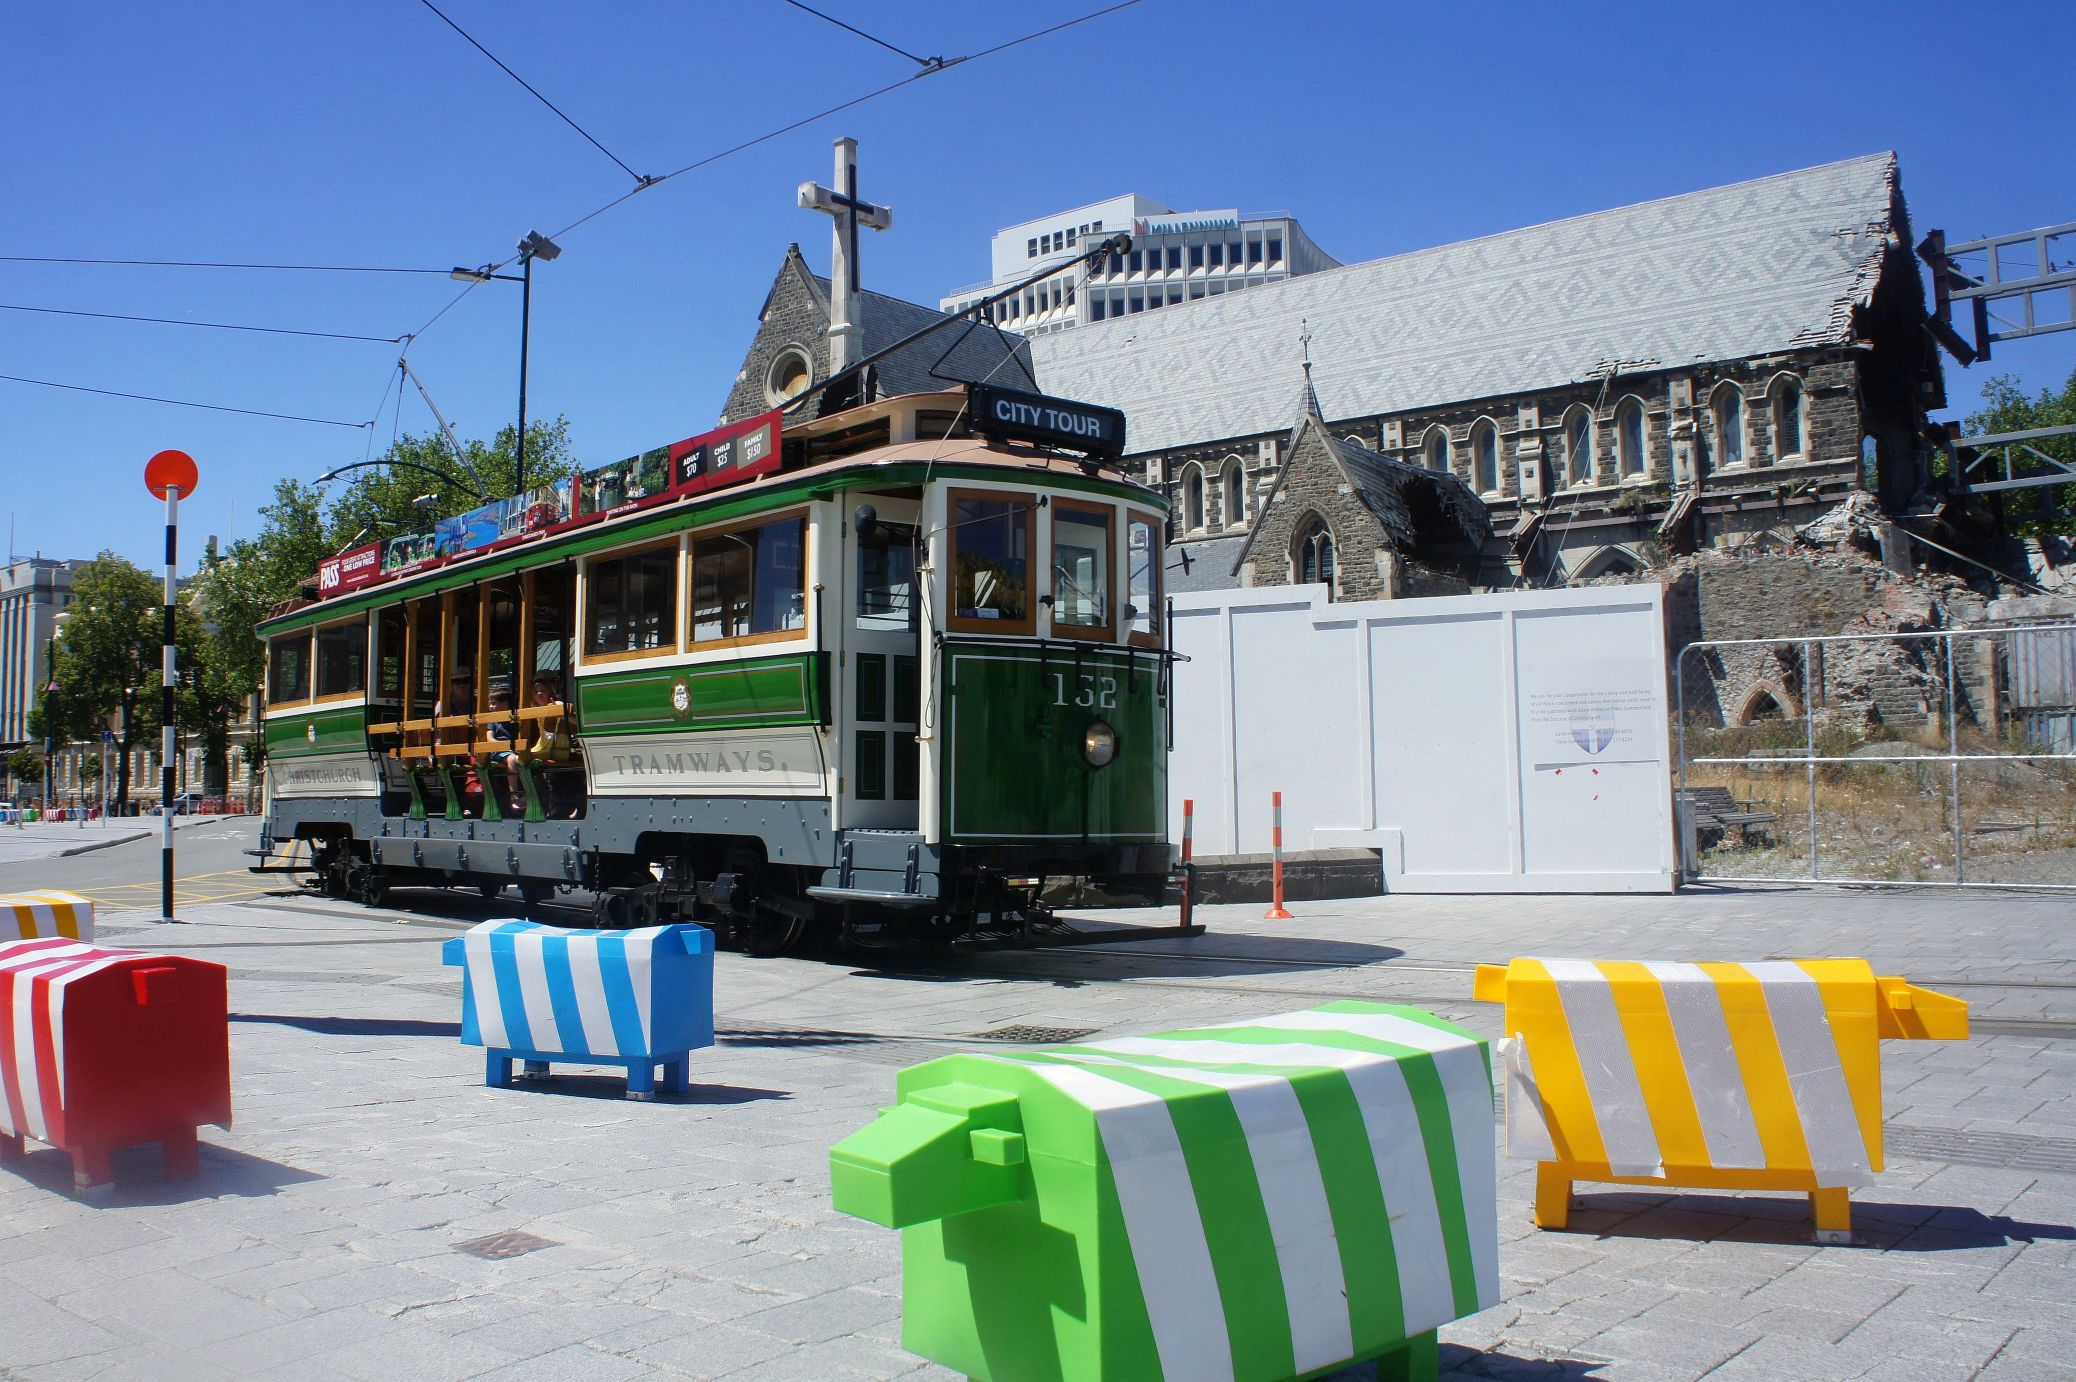 Compulsory picture of sheep in New Zealand. These traffic sheep are accompanied by the tourist tram and the severely damaged Christchurch Cathedral.